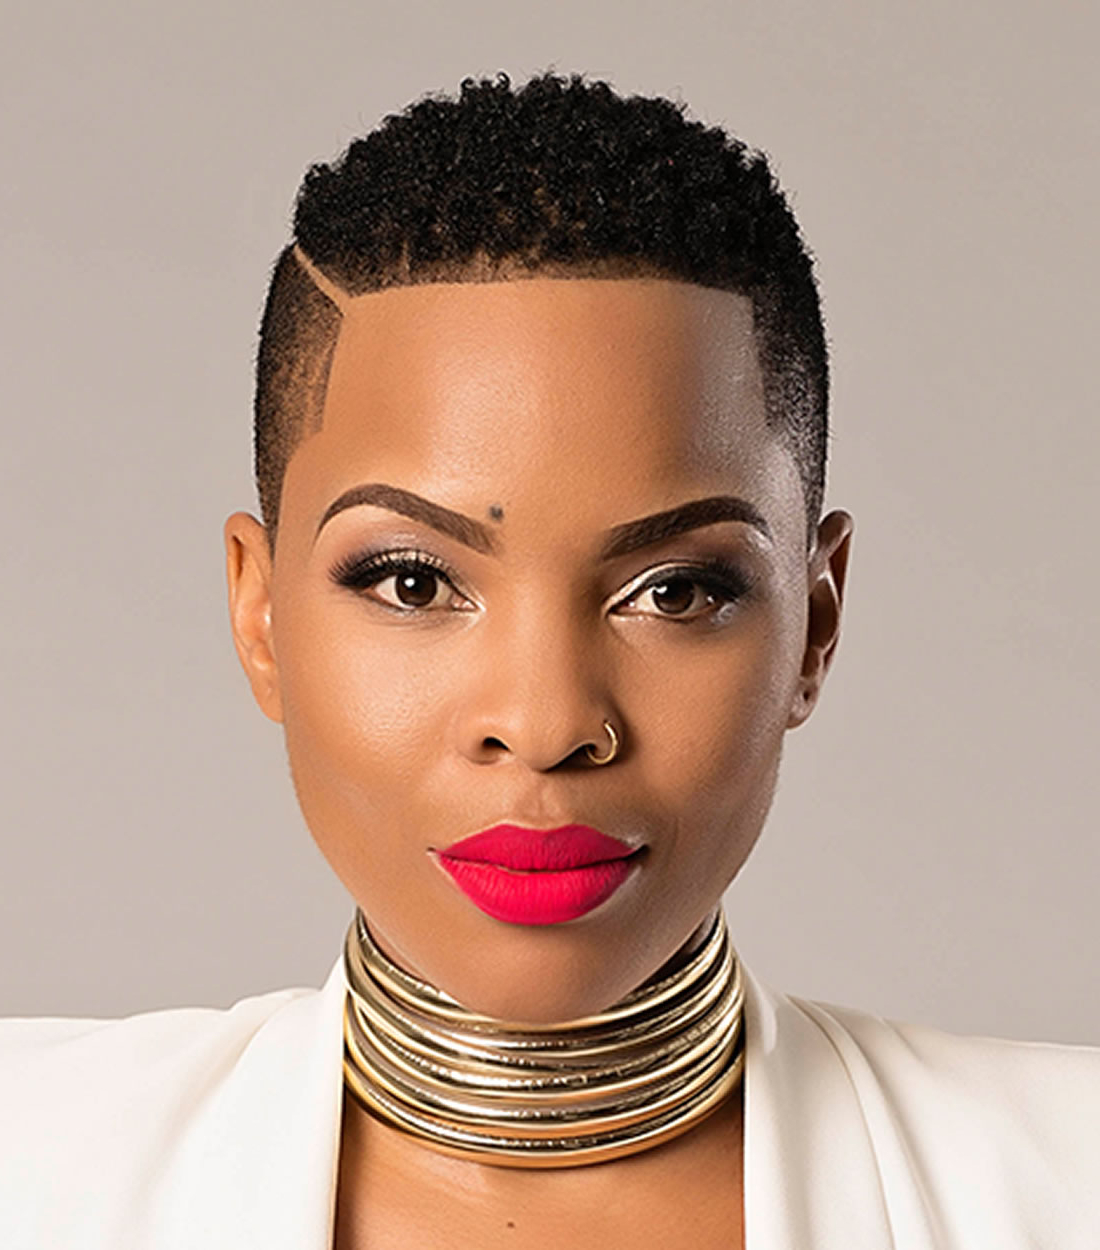 32 Exquisite African American Short Haircuts And Hairstyles For 2018 In Afro Short Haircuts (View 2 of 25)